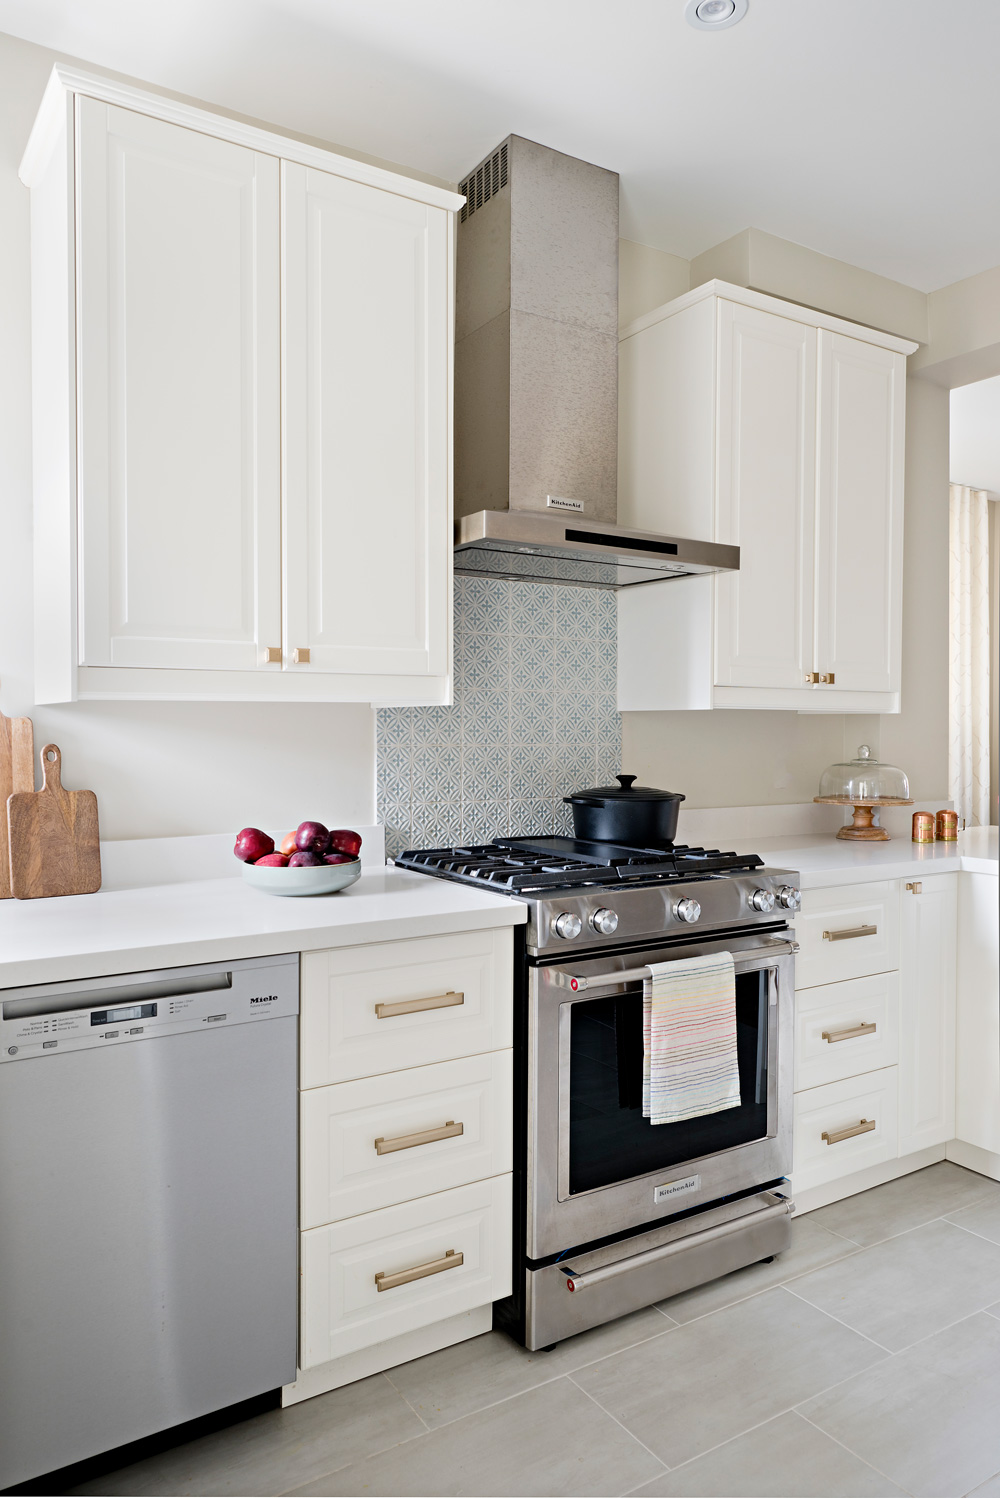 Creamy white kitchen cabinets with brass hardware. Stove with blue accent tile backsplash.